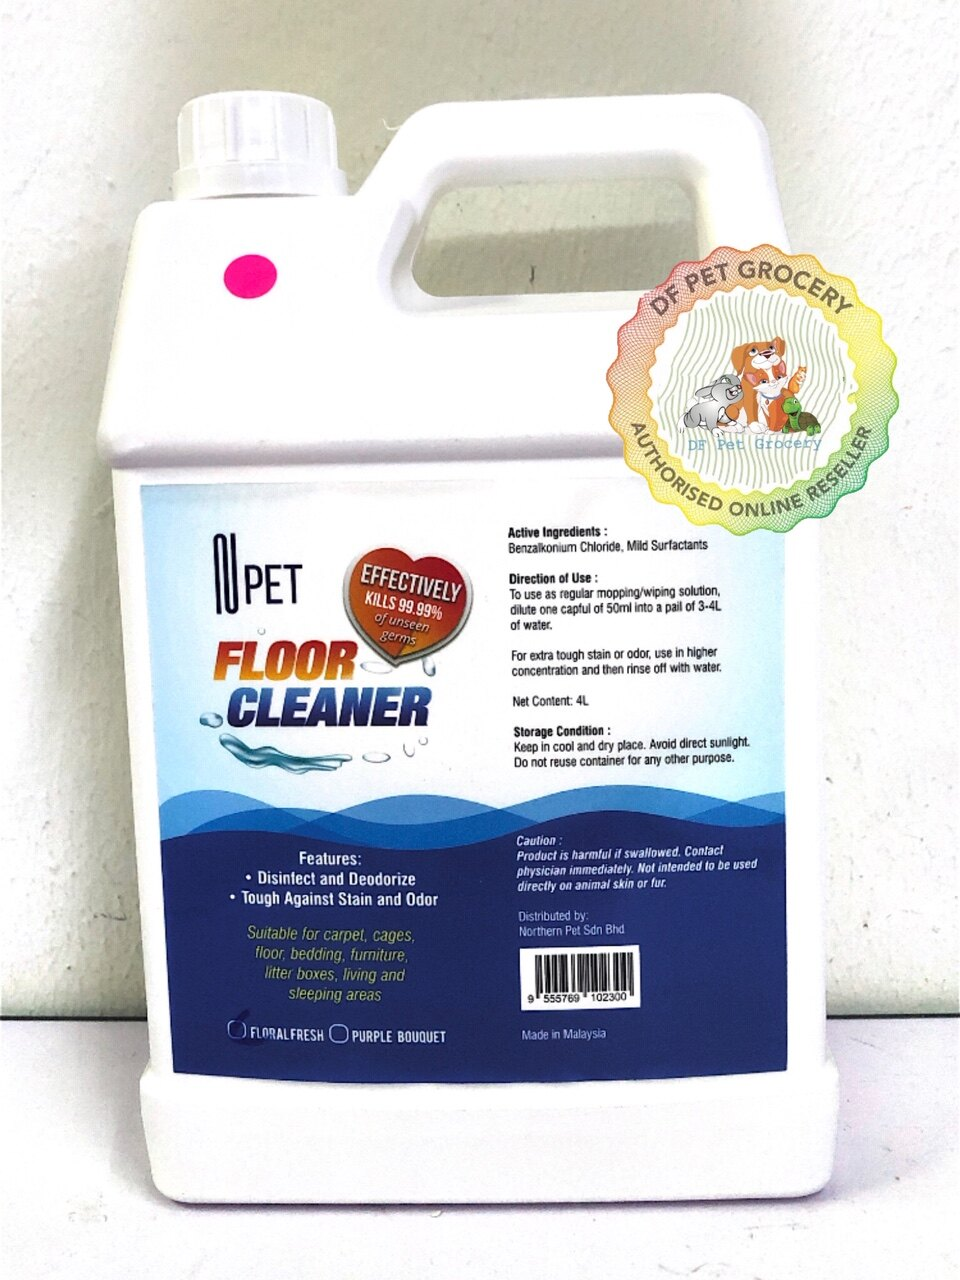 Npet Floor Cleaner & Disinfect and Deodrize (4L) Effectively Kills 99.99% Of Unseen Germs